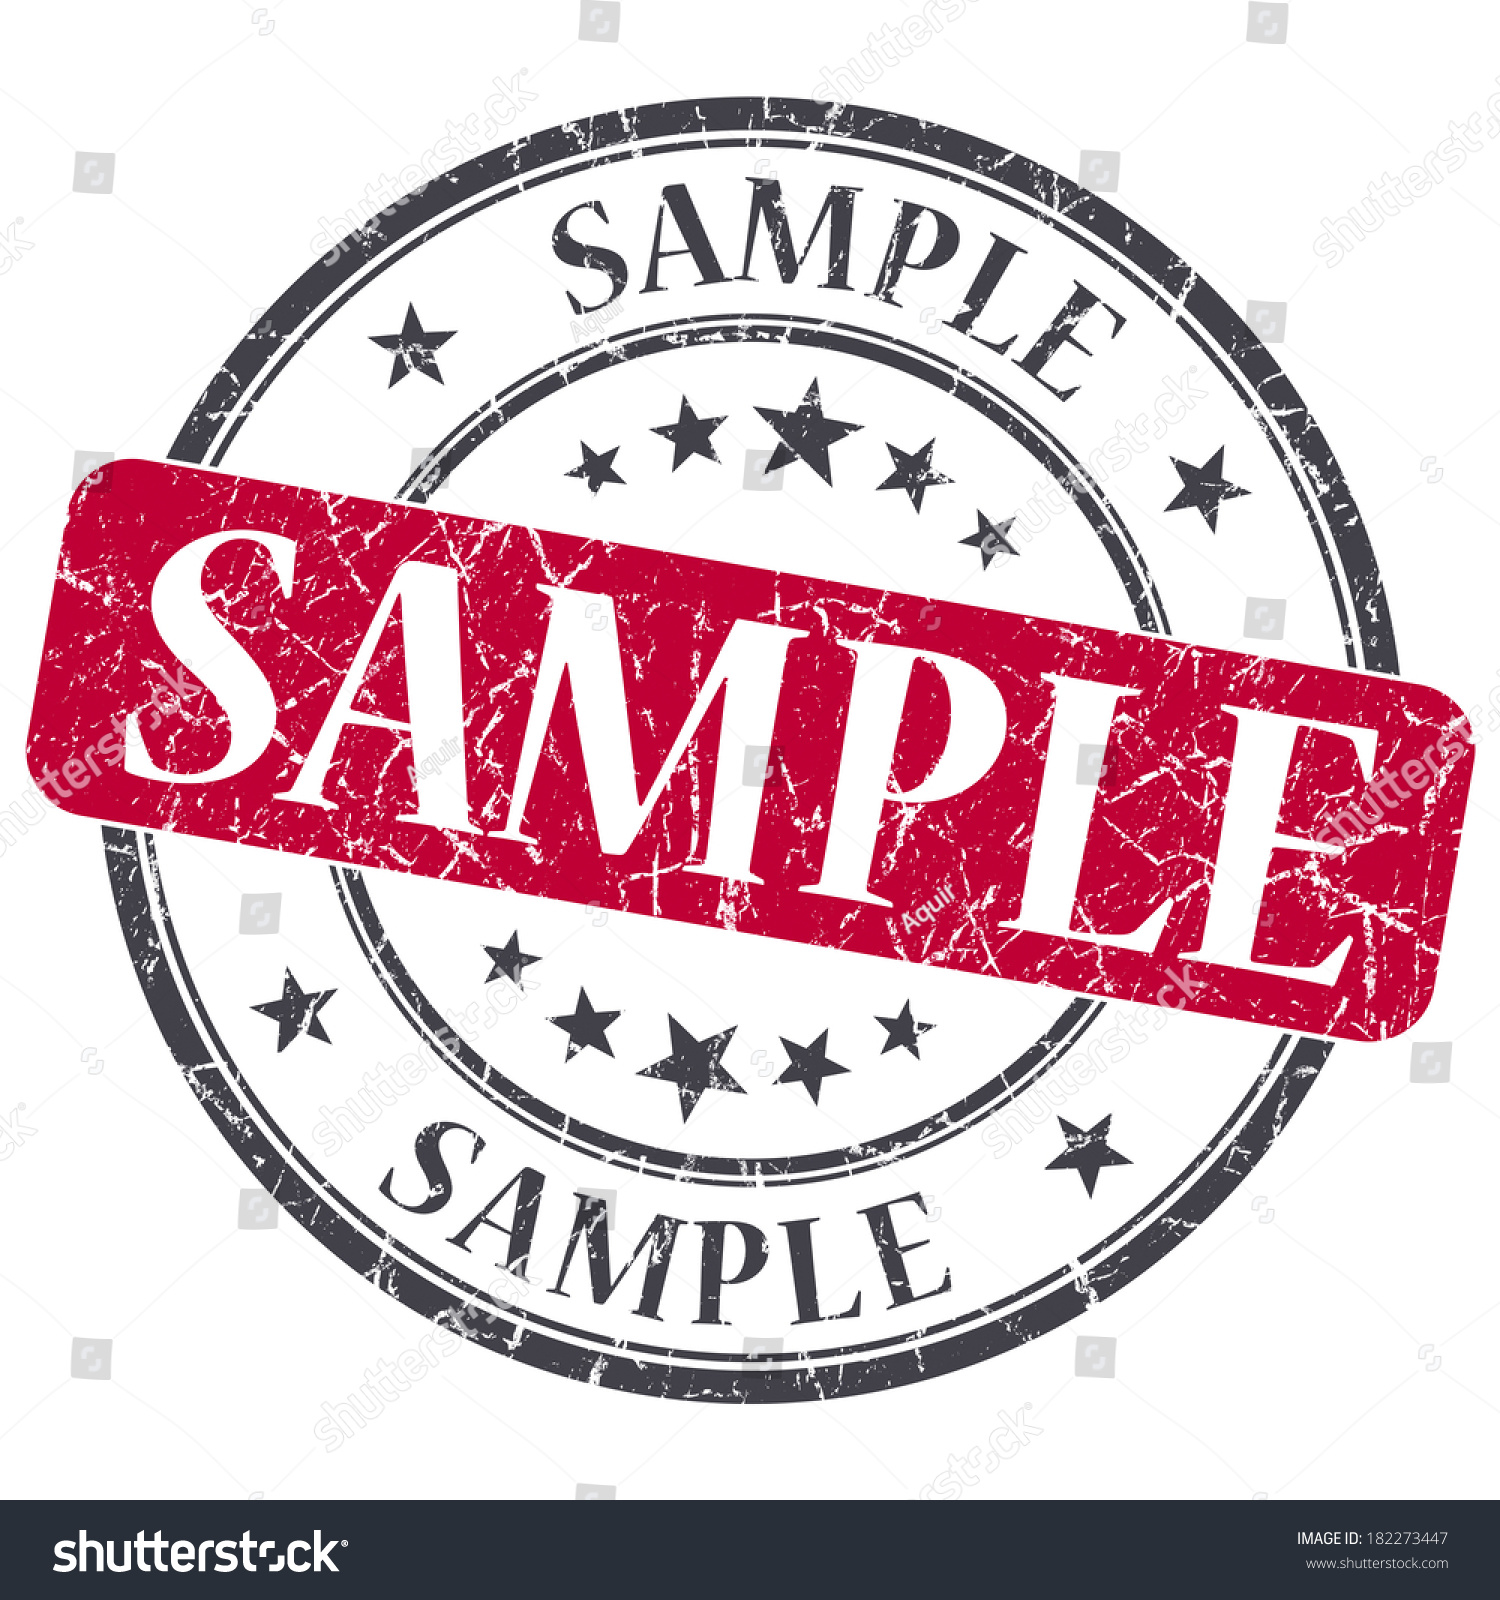 Http Www Shutterstock Com Pic 182273447 Stock Photo Sample Red Grunge Round Stamp On White Background Html